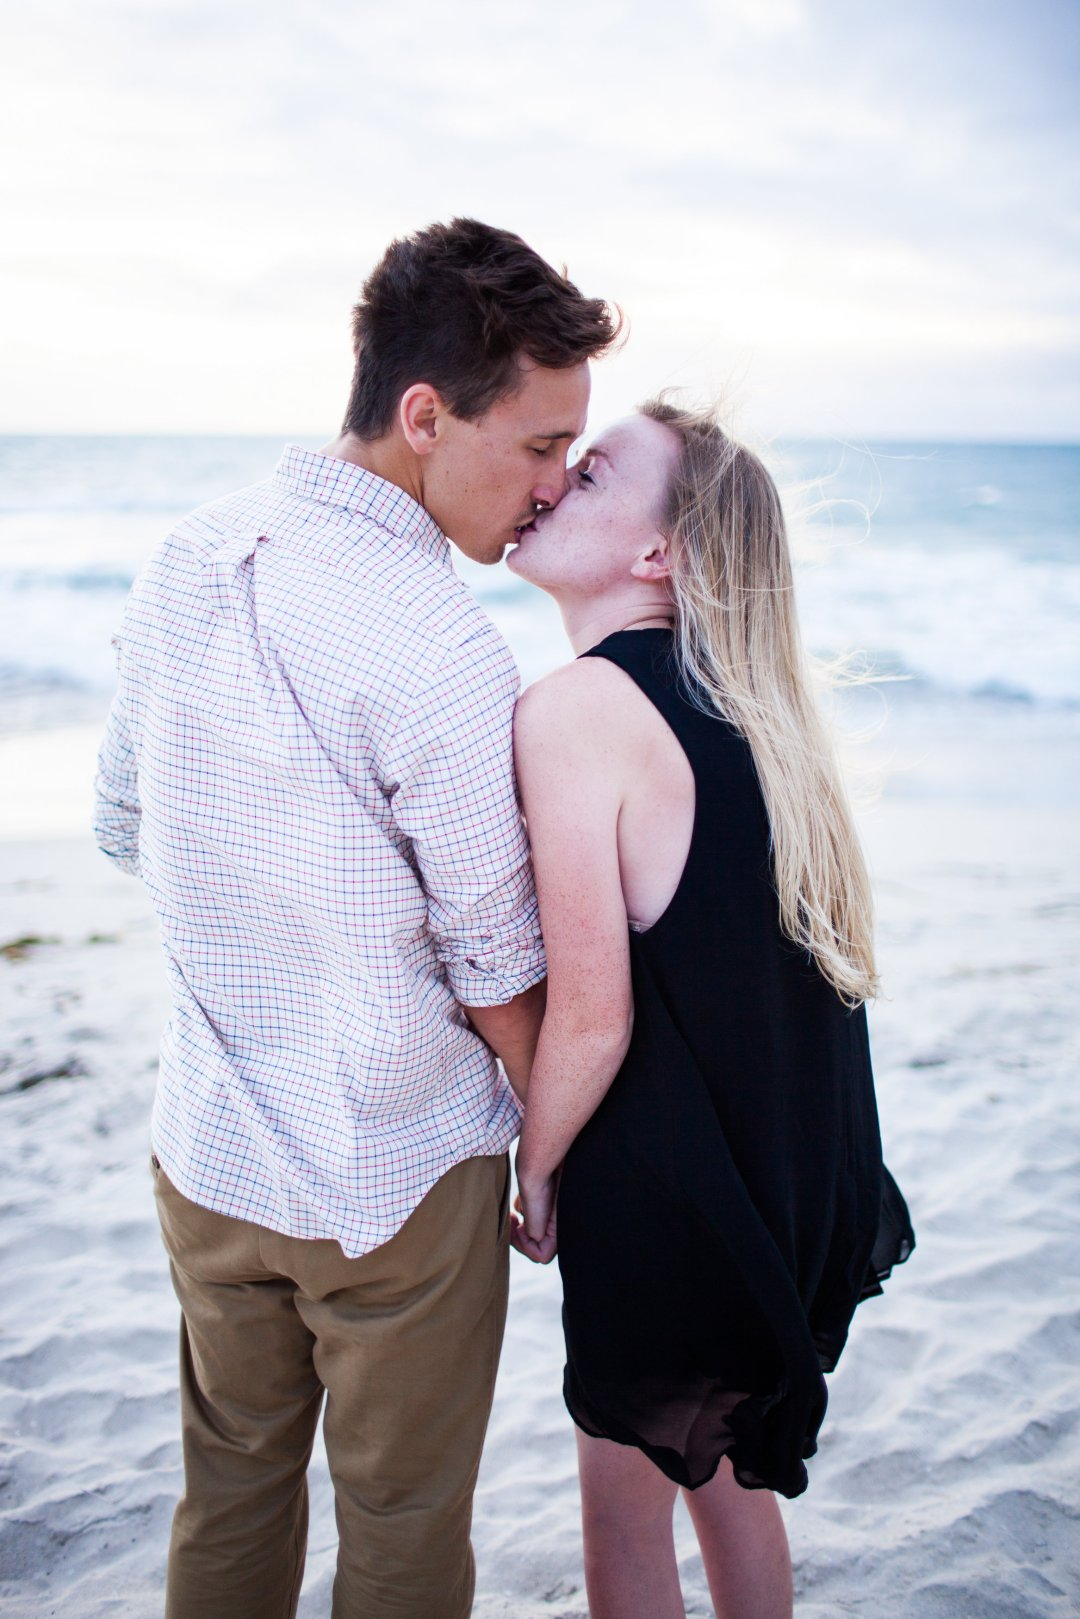 View More: http://ameliaclairephoto.pass.us/aaron-and-sam-engagement